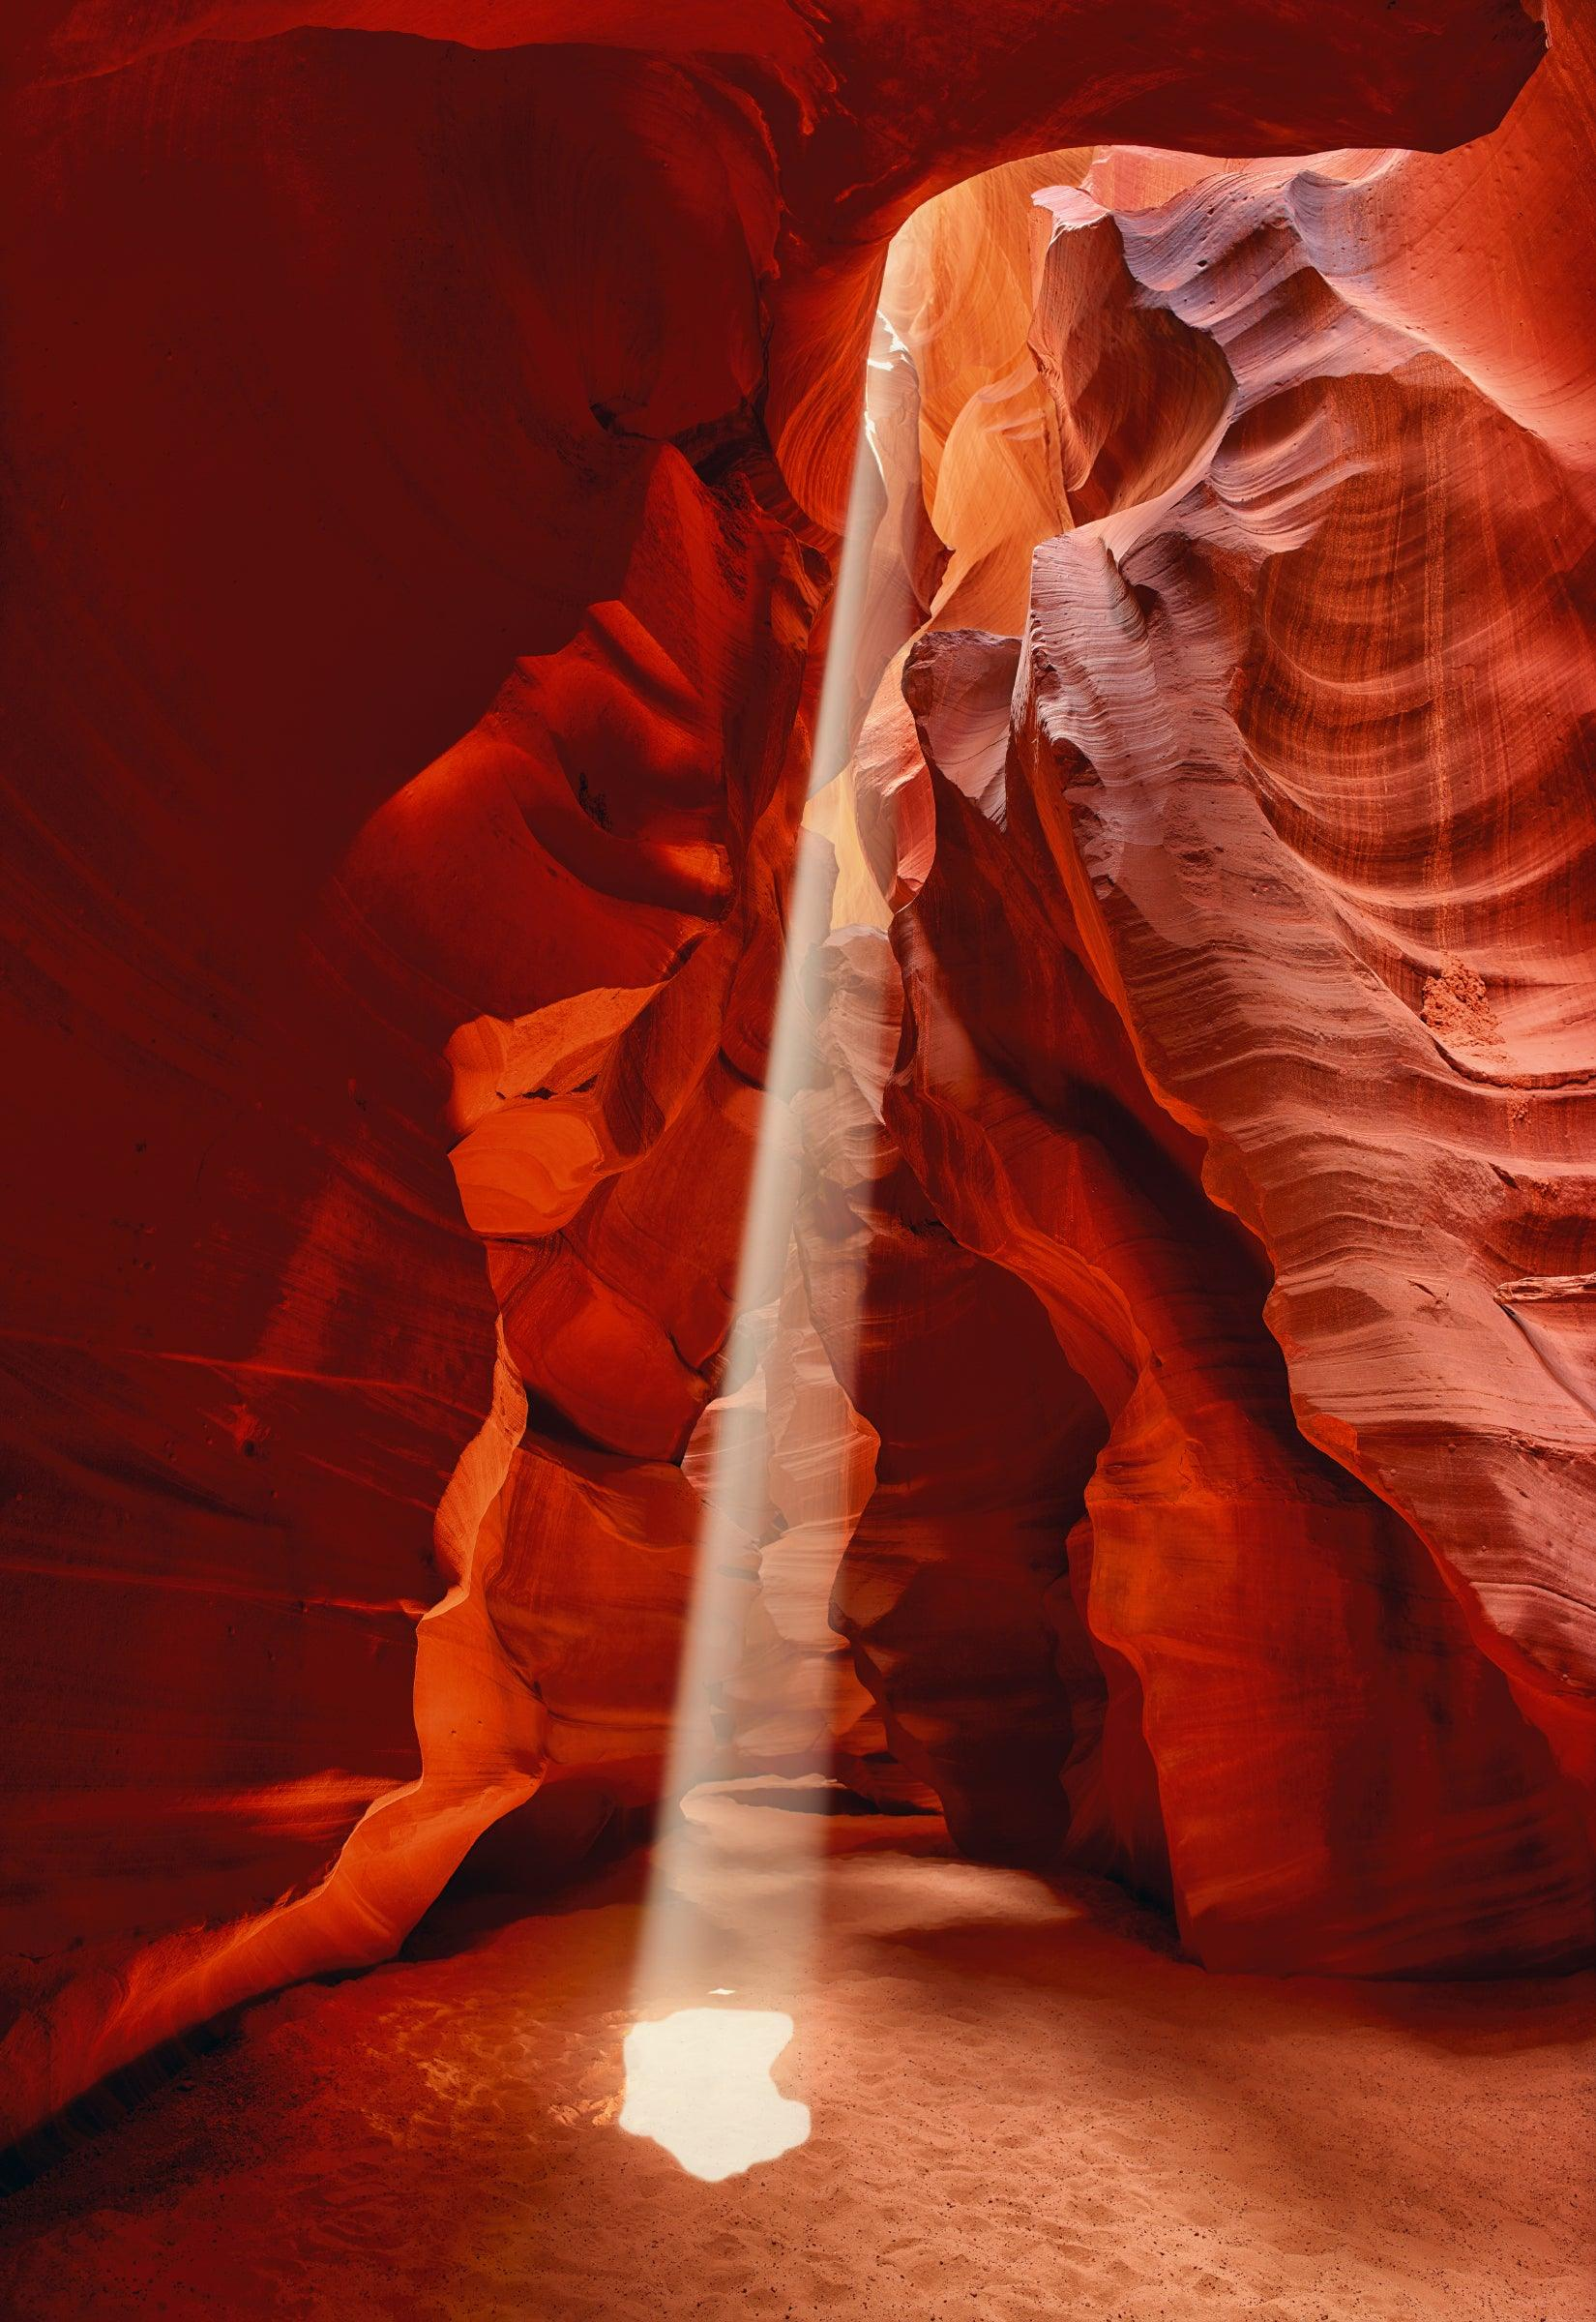 Sun light shining through the ceiling and onto the sand floor of the slot canyons in Antelope Canyon Arizona